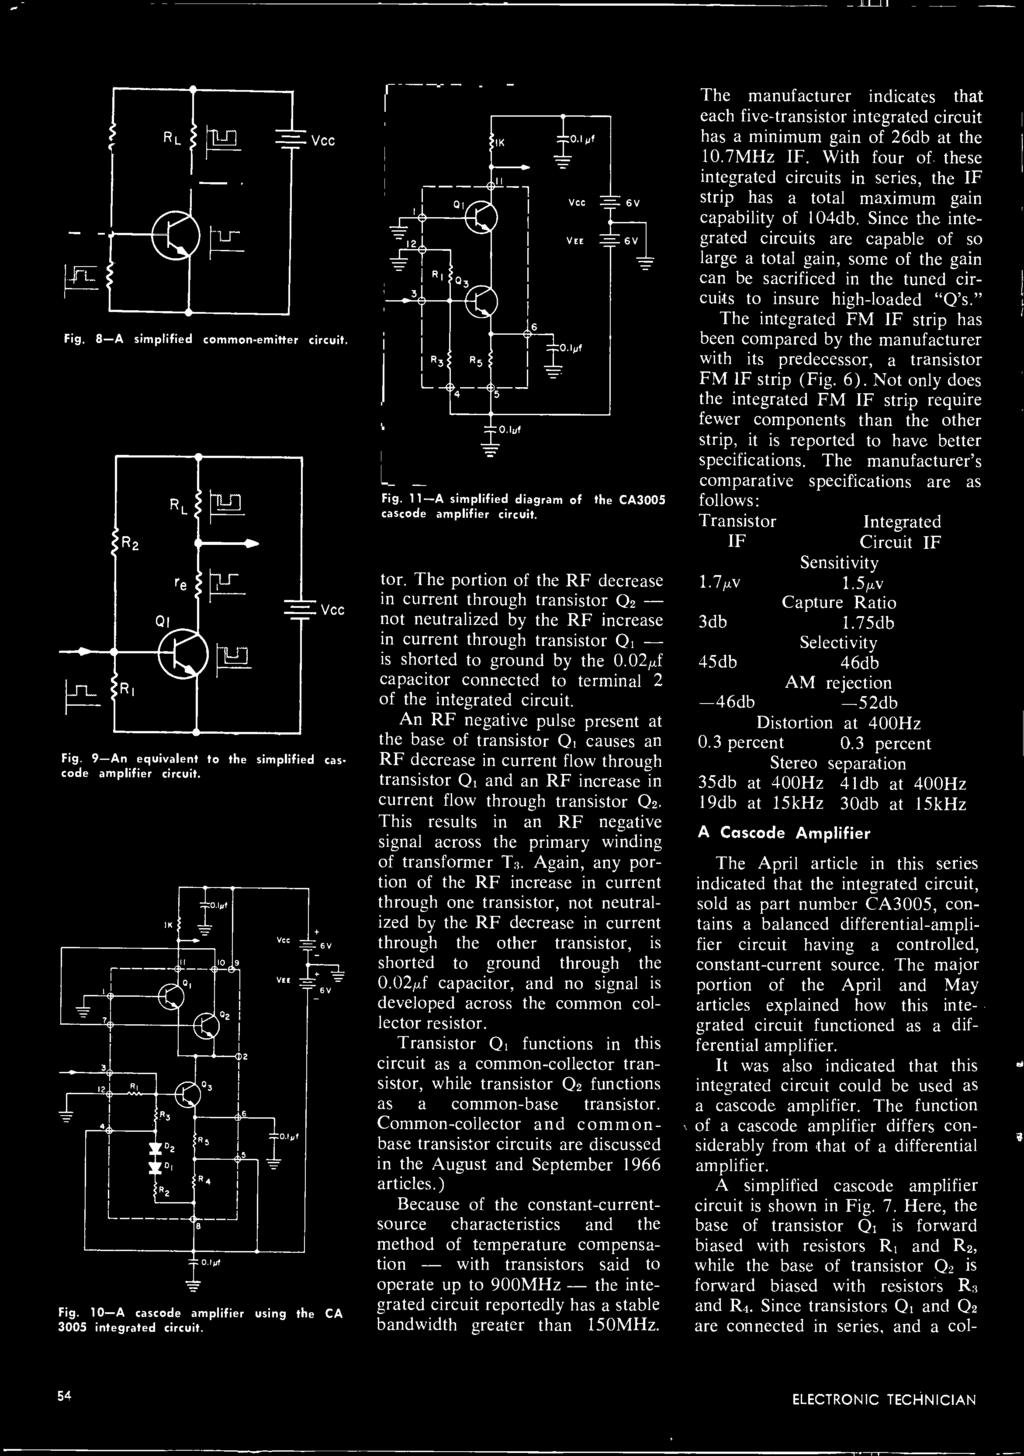 Servicing A Modern Color Tv Protecting Electronic Circuits The Blaupunkt 420 Bt Wiring Diagram 024 Capacitor Connected To Terminal 2 Of Integrated Circuit